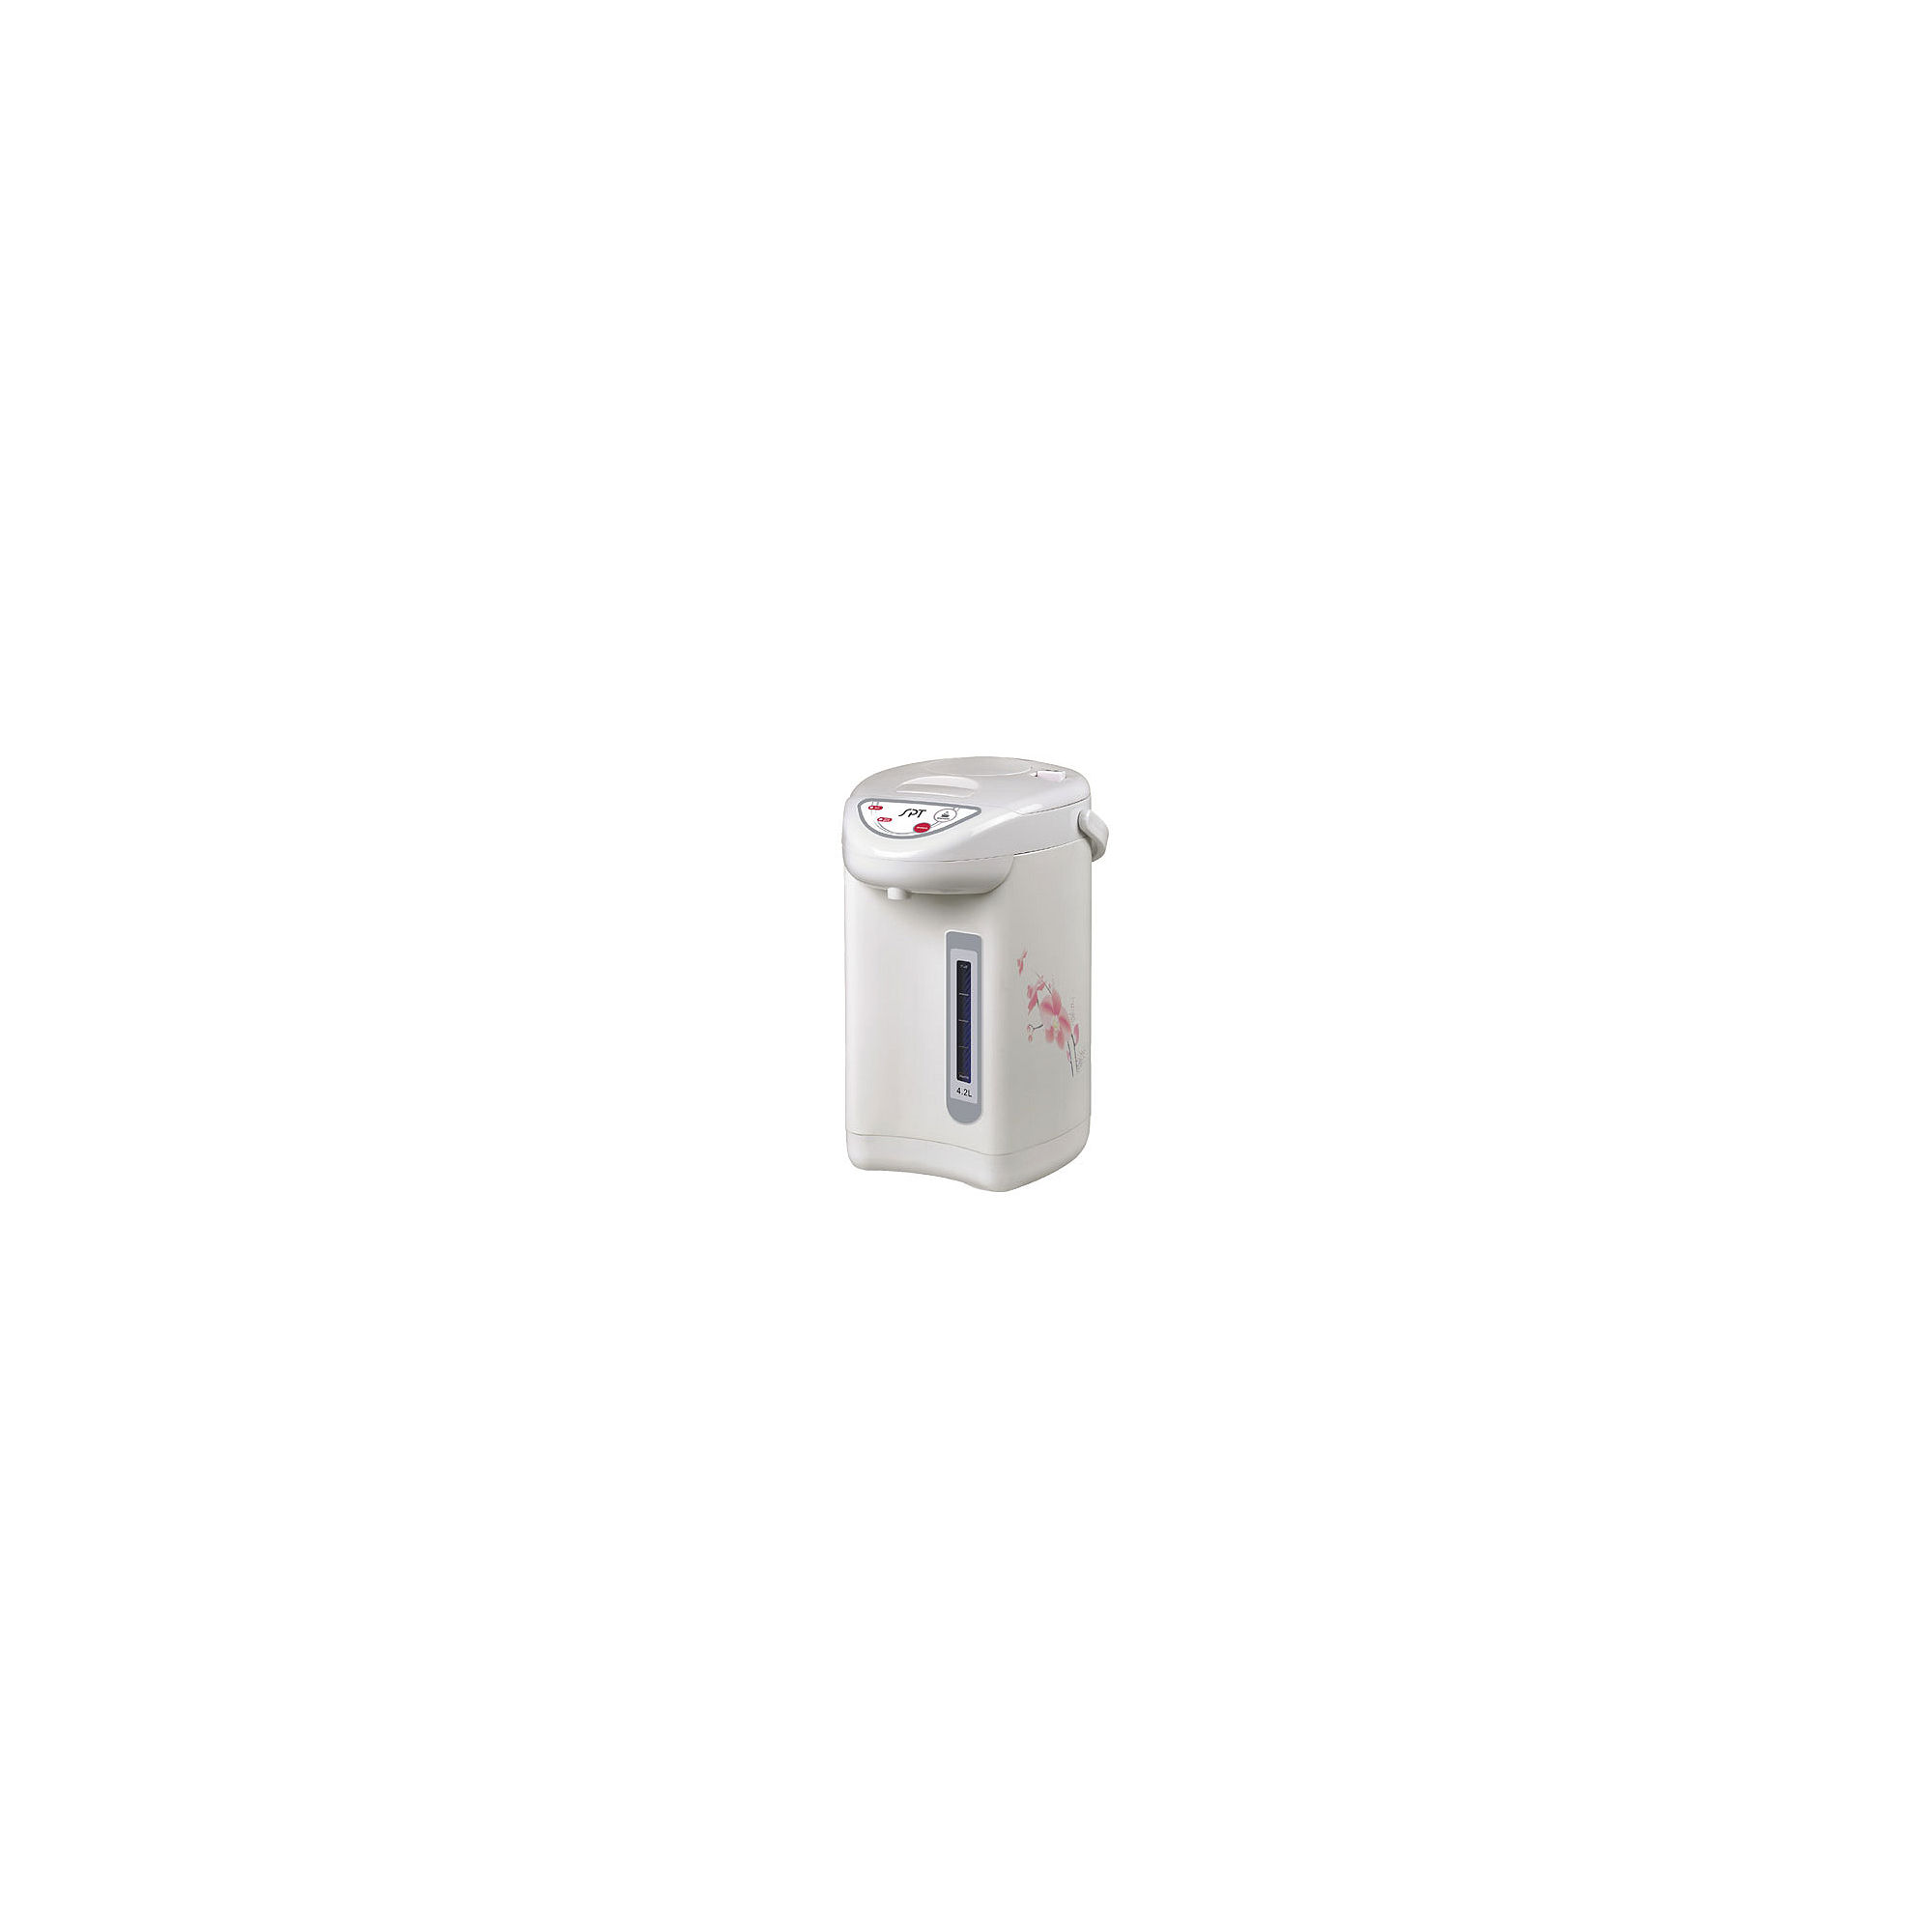 SPT SP-4201: Hot Water Dispenser with Dual-Pump System 4.2L